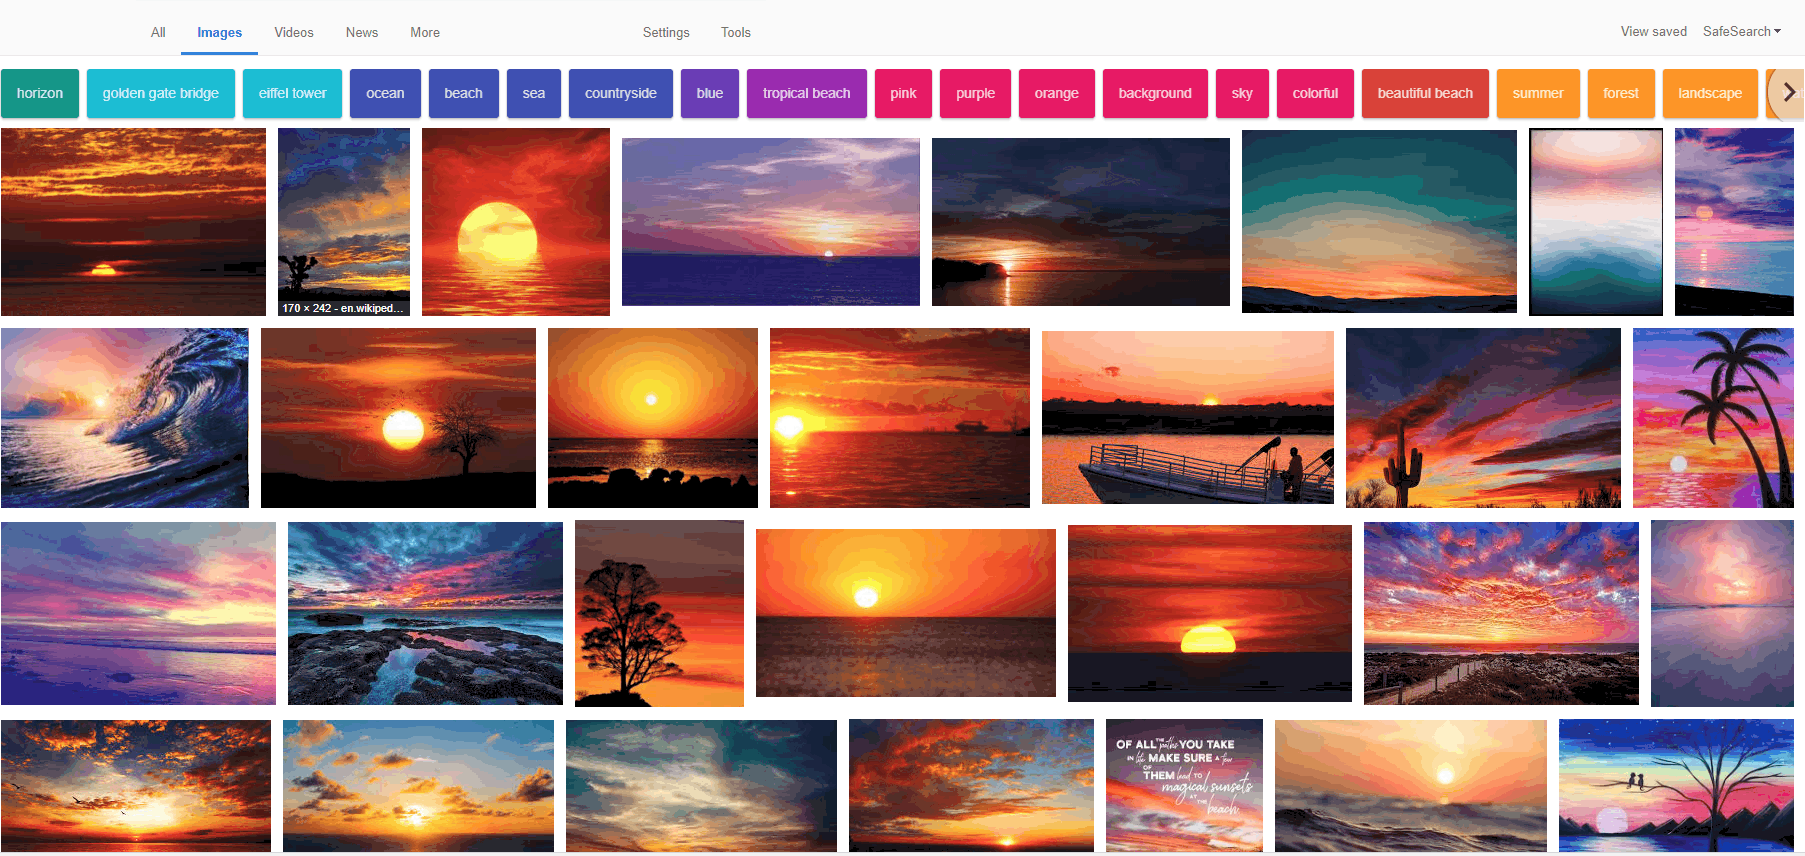 Searching for 'sunset' on Google image